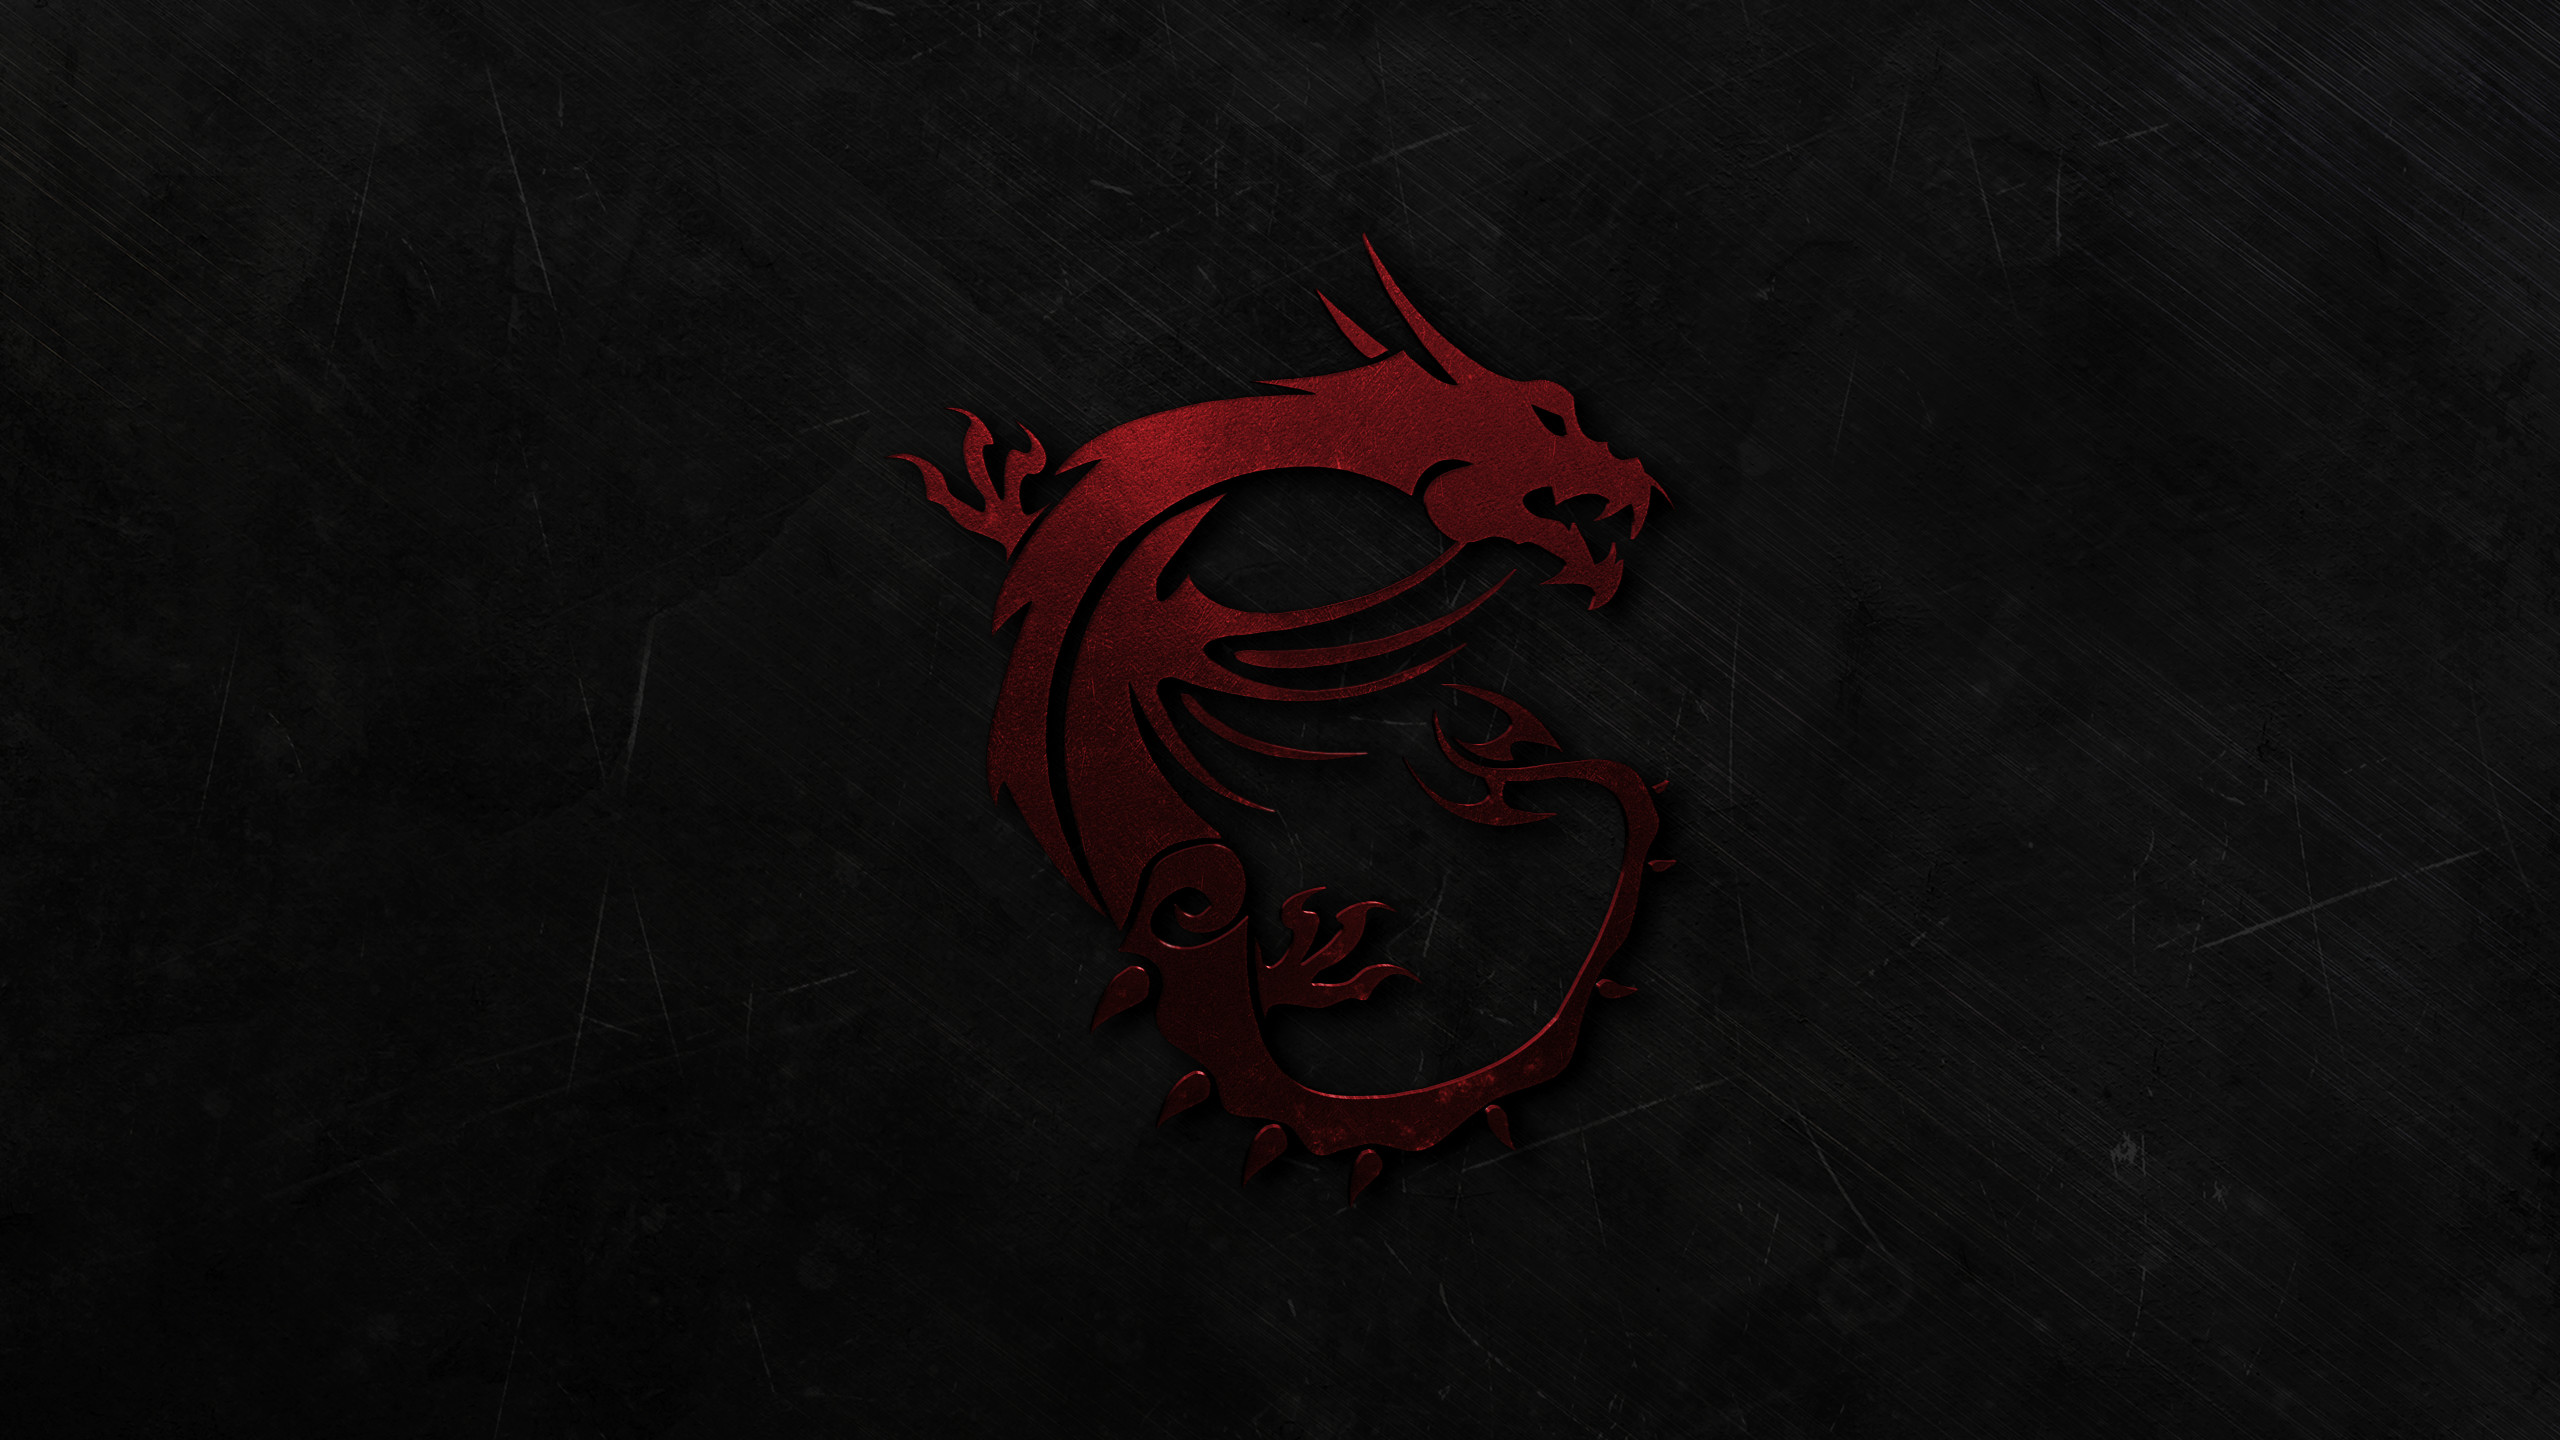 … MSI Gaming Dragon Wallpaper V2 (Red) by Xilent21